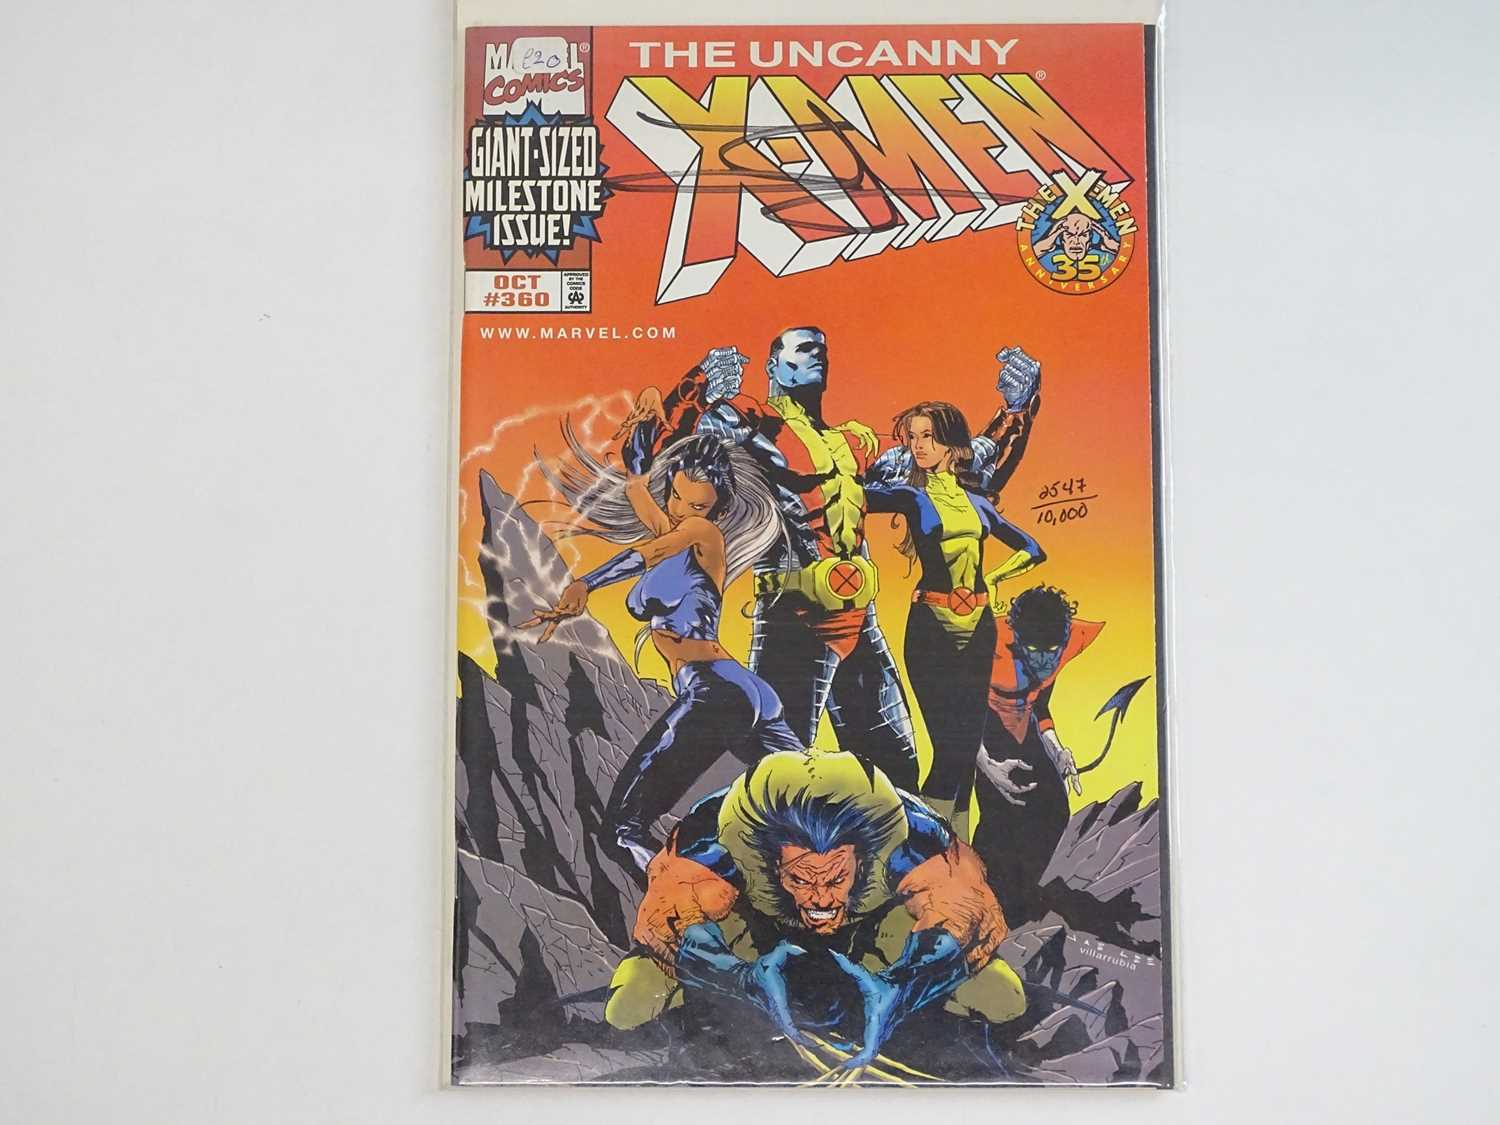 UNCANNY X-MEN #360 - (MARVEL - 1998) - Signed to Front Cover by Jae Lee and Numbered #2547/10,